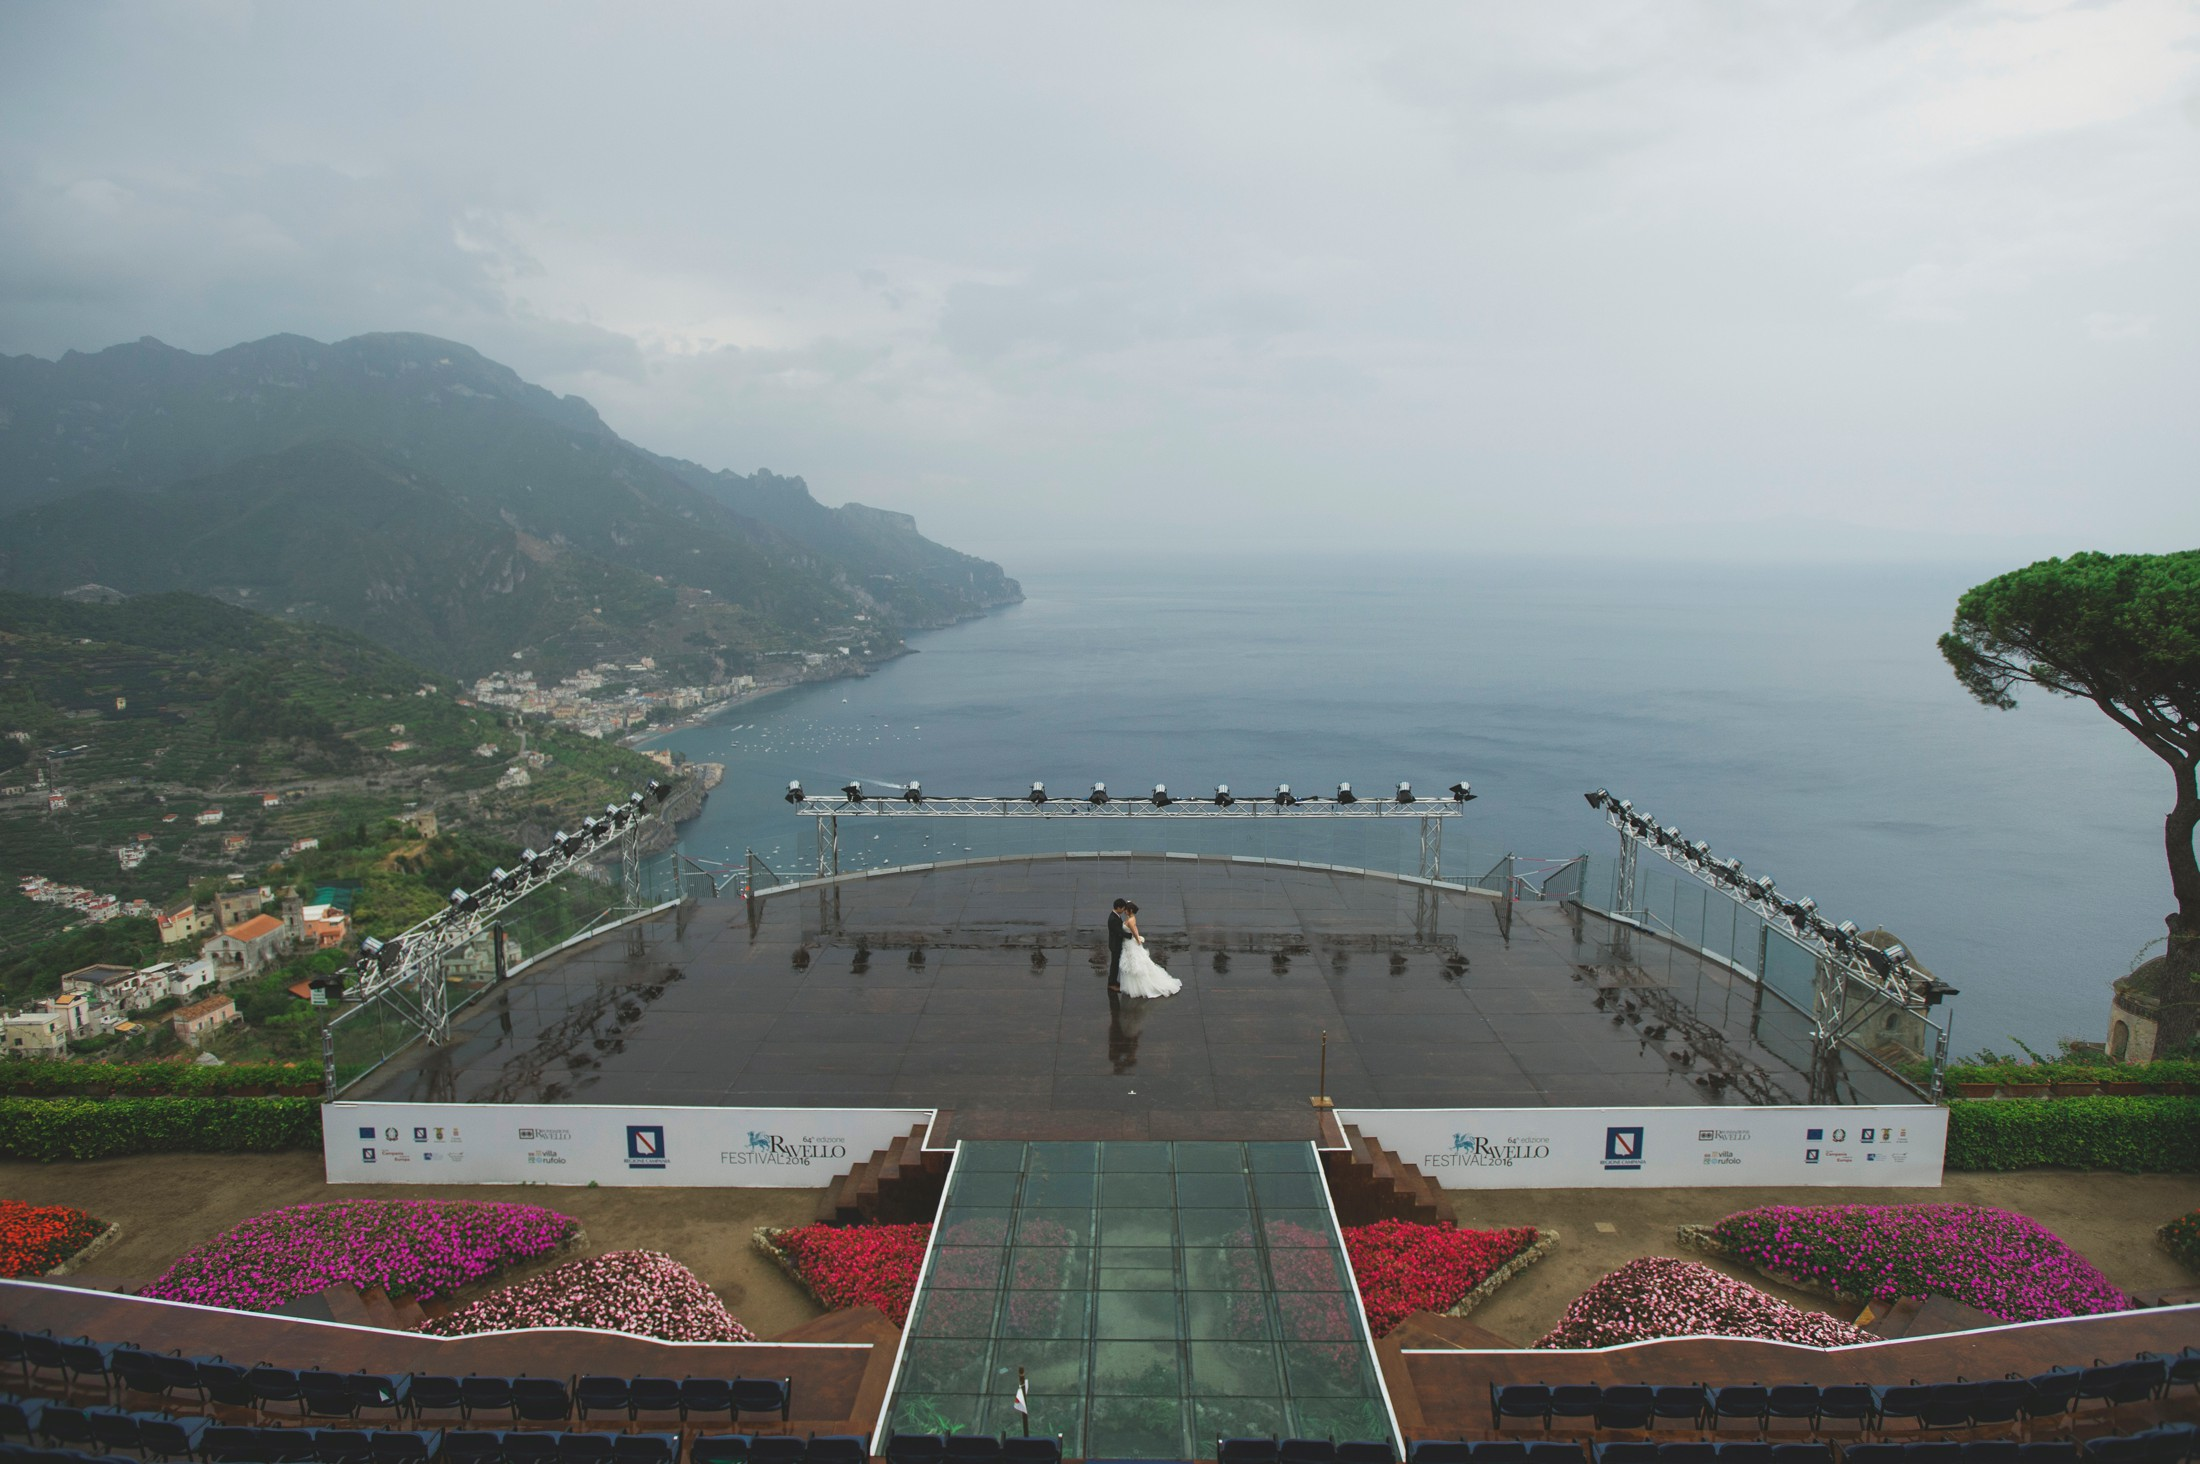 bride and groom at the auditorium of ravello after the rain